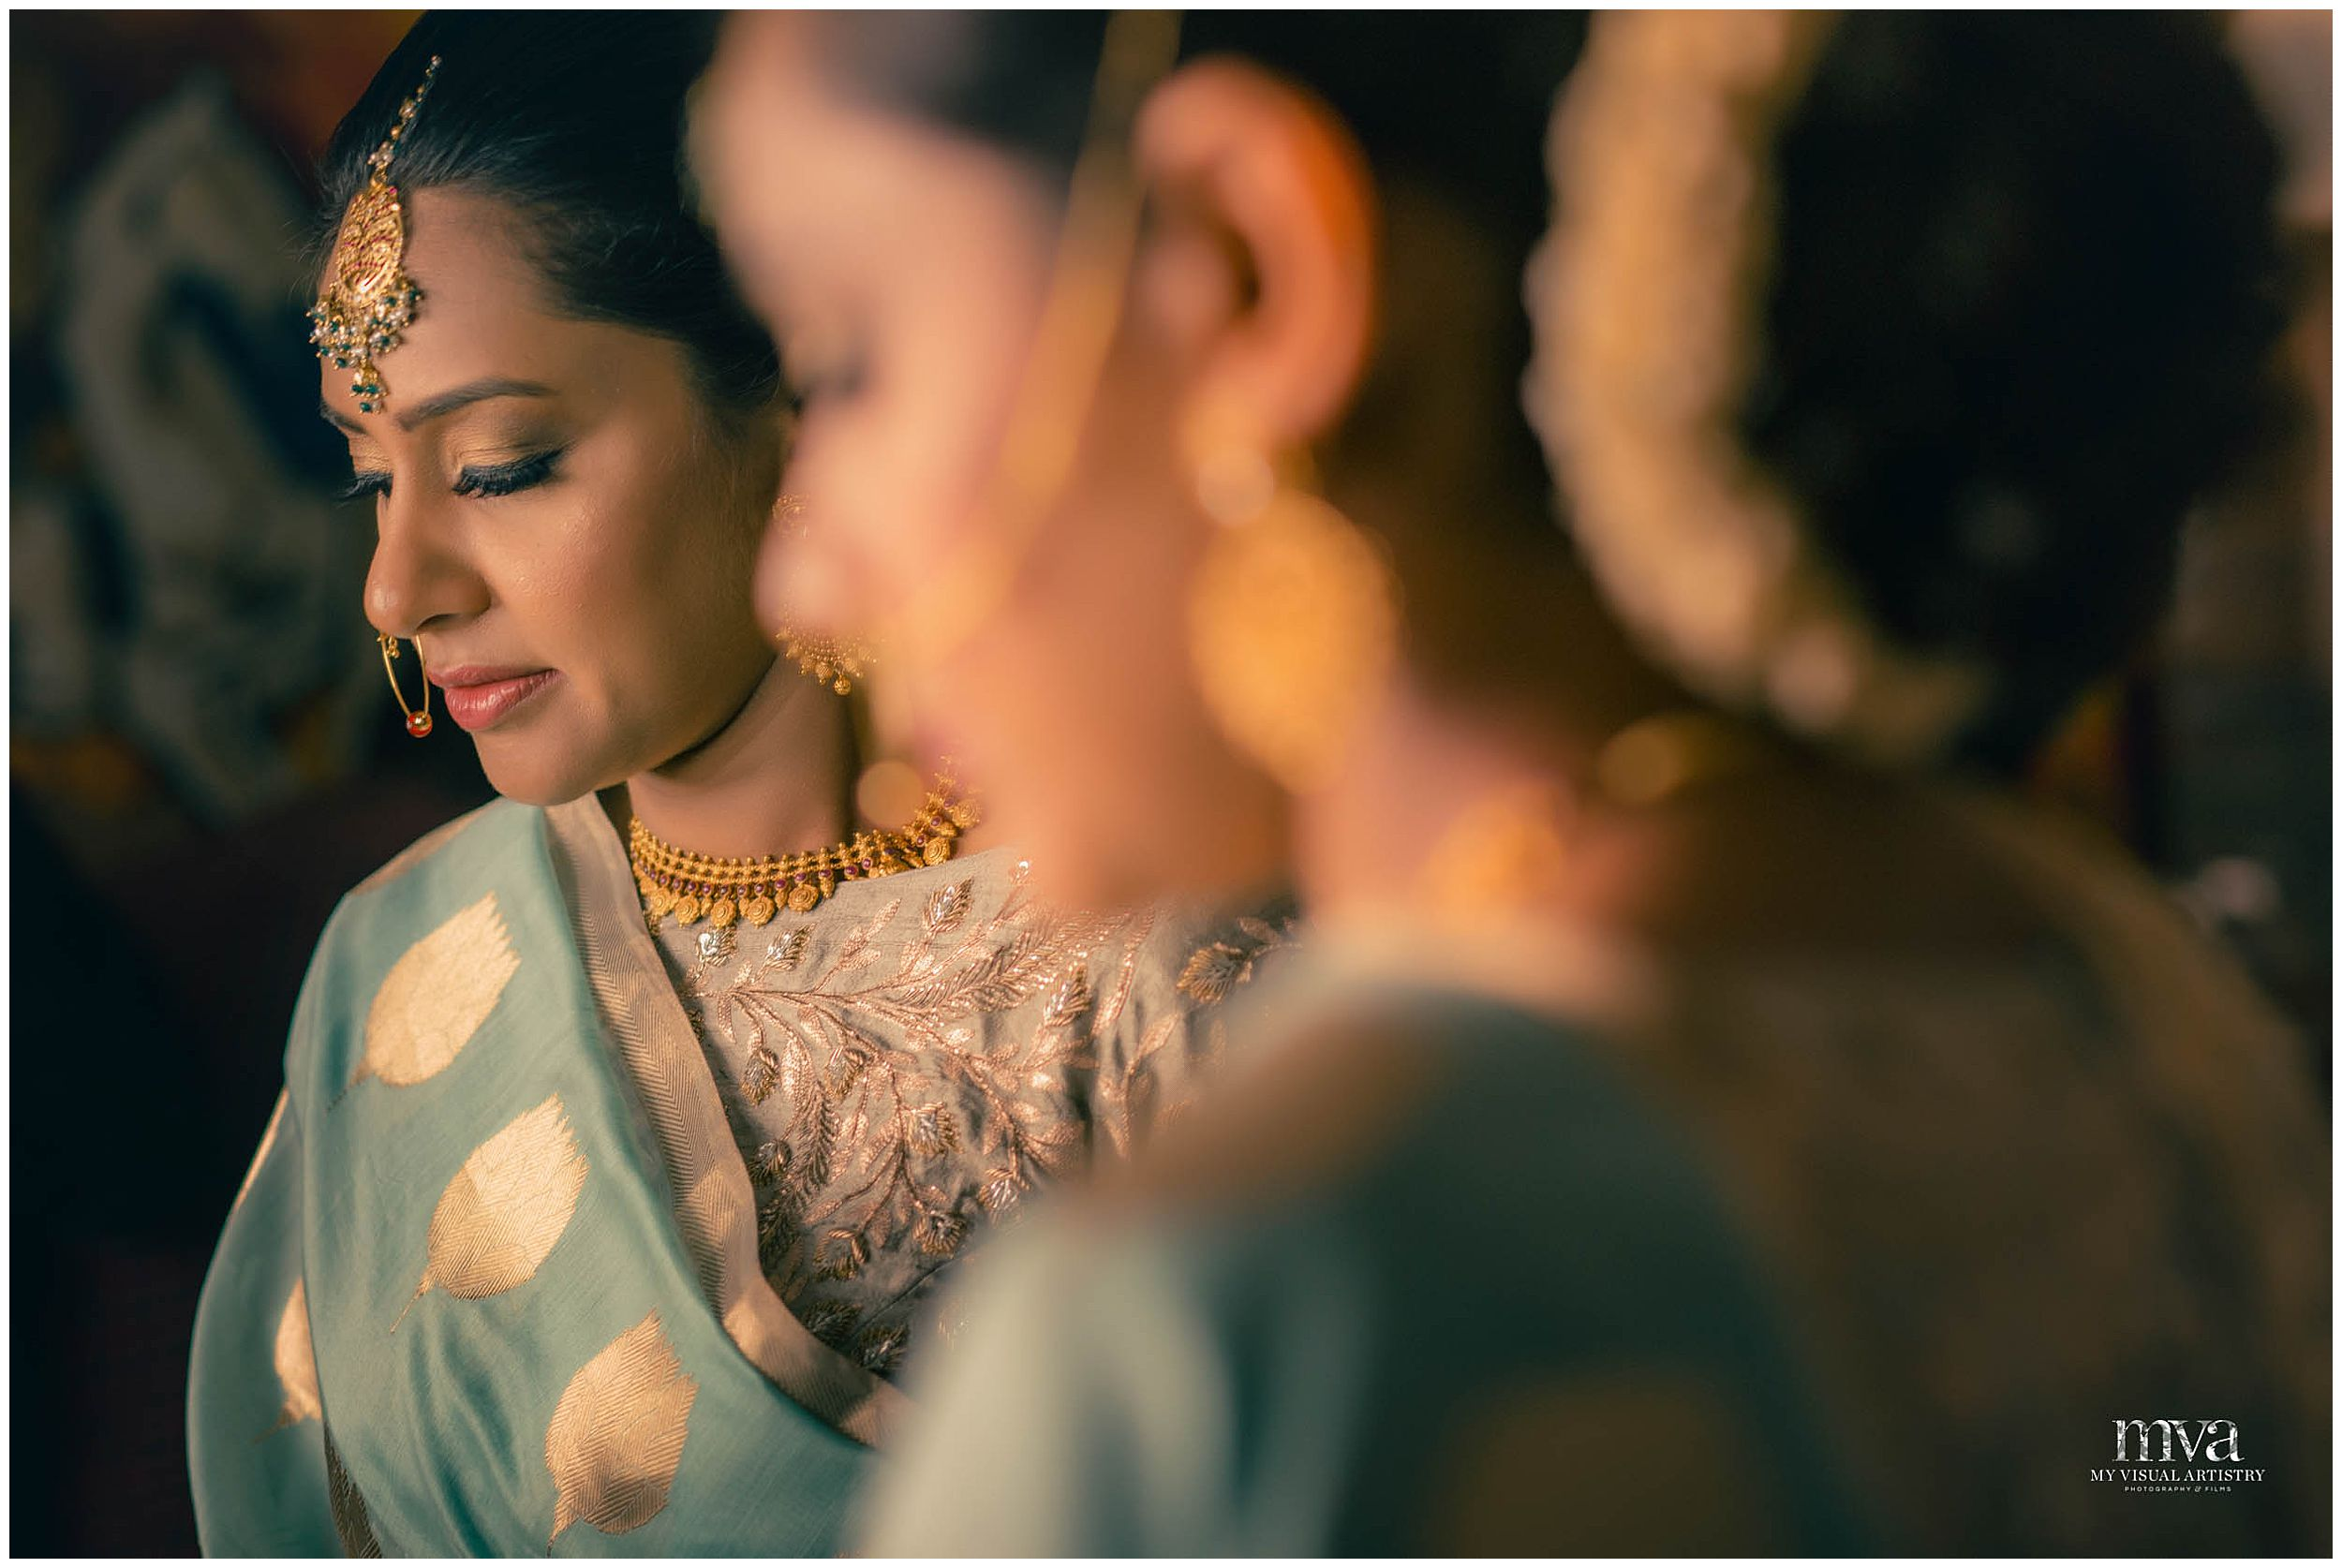 SAHIBA_KARTHIK_MYVISUALARTISTRY_WEDDING_PHOTOGRAPHY_MVA_KERALA_GURGAON_0021.jpg